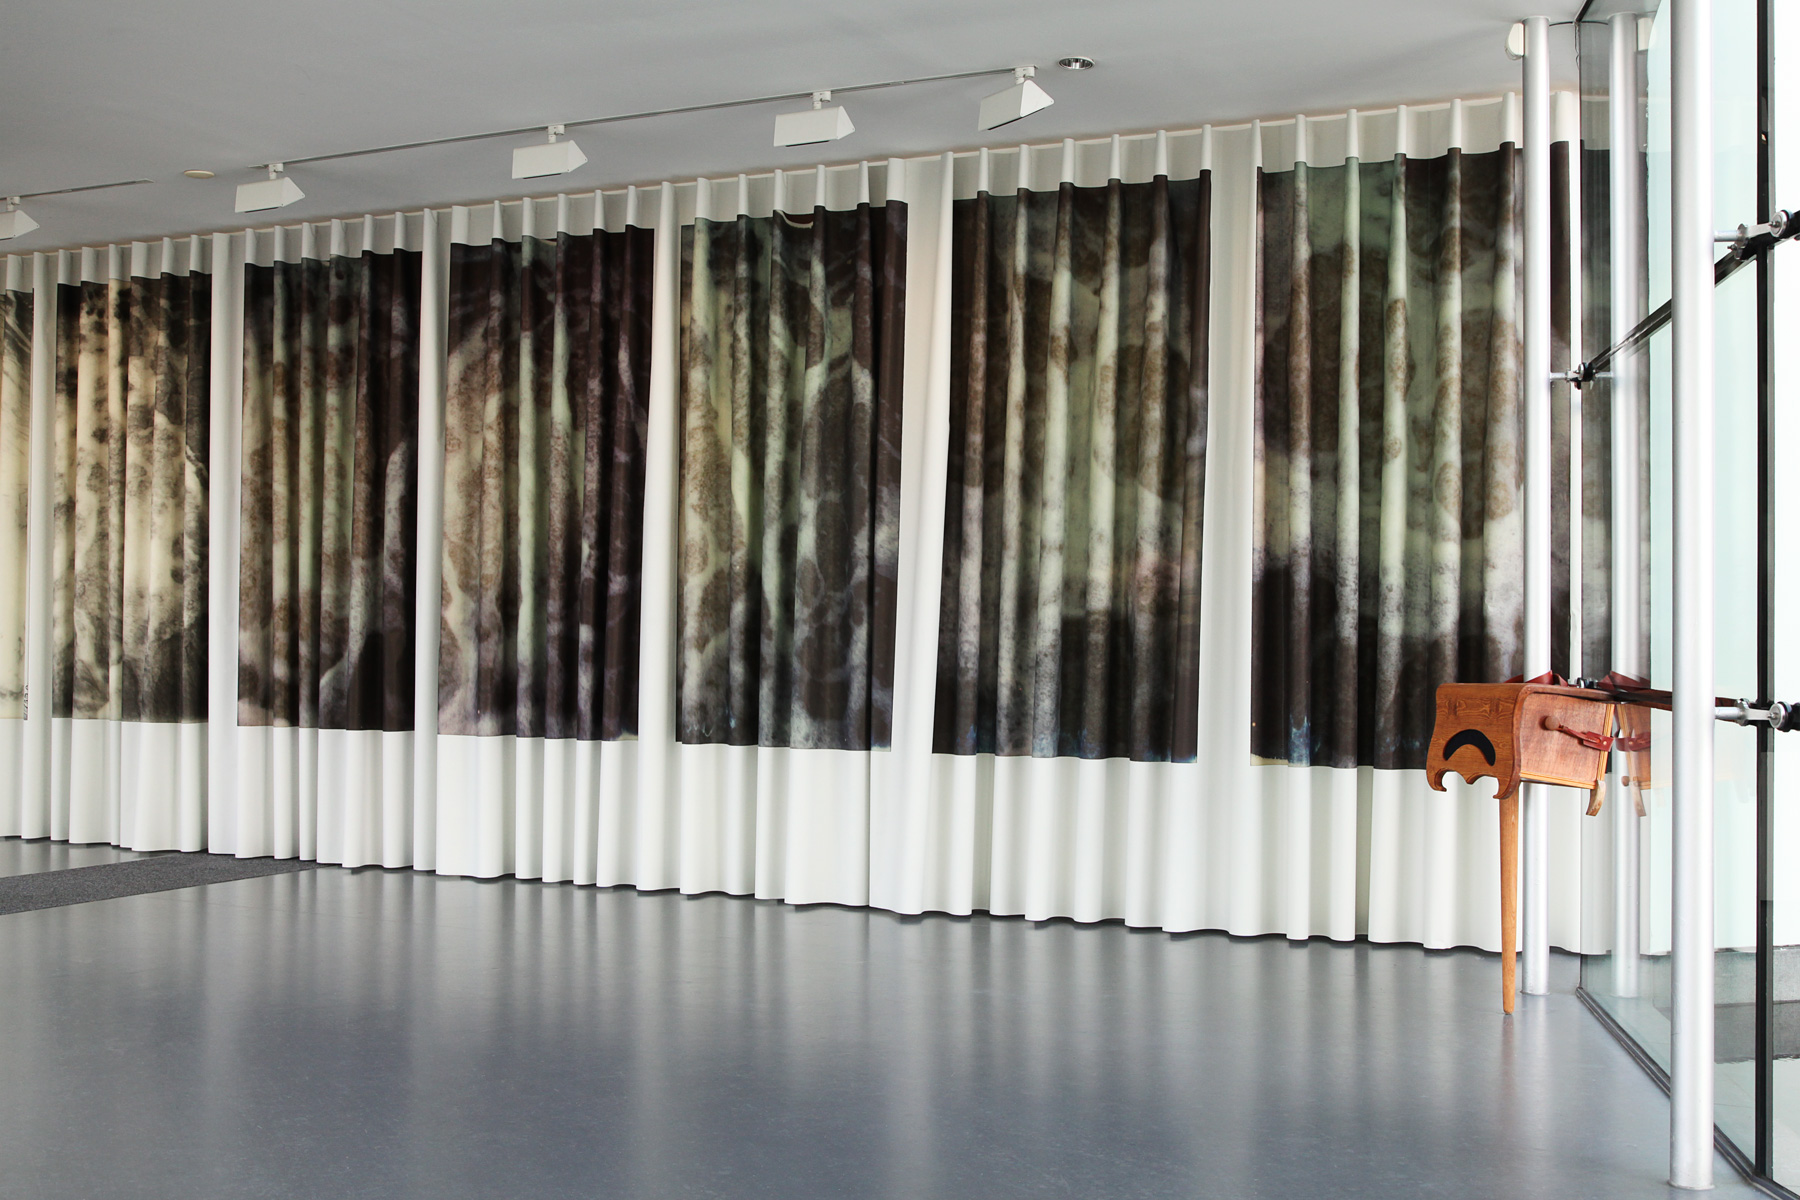 Michele Matyn at Van Abbe Museum, Eindhoven